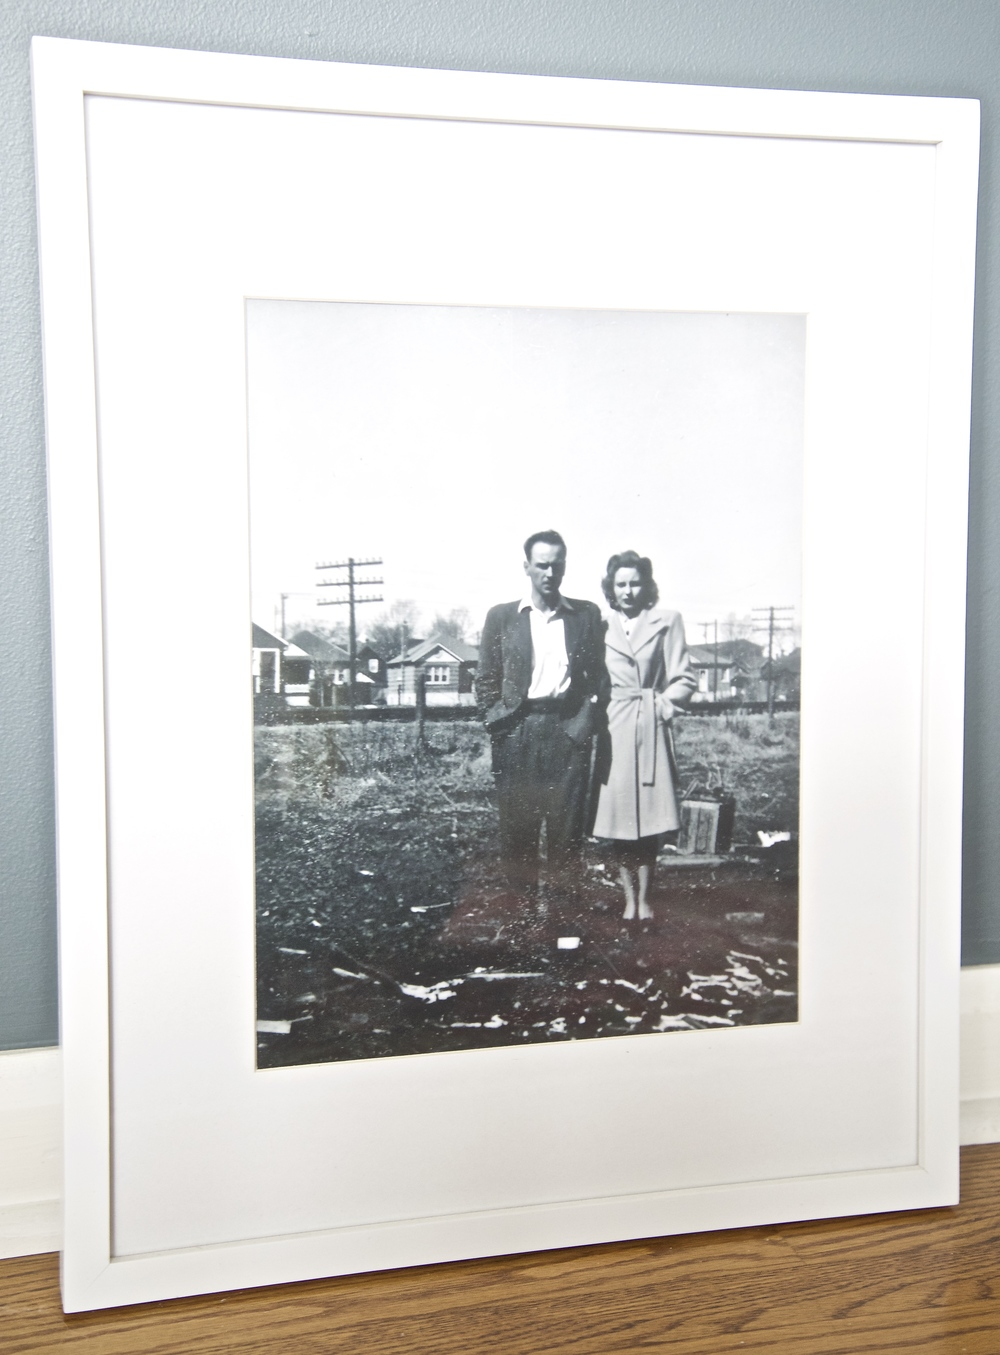 This black & white photograph is a portrait of my grandparents. My husband surprised me & had it blown up from the original copy. To say I love it would be an understatement! The placement of the poles in the background adds to the street scene behind them.